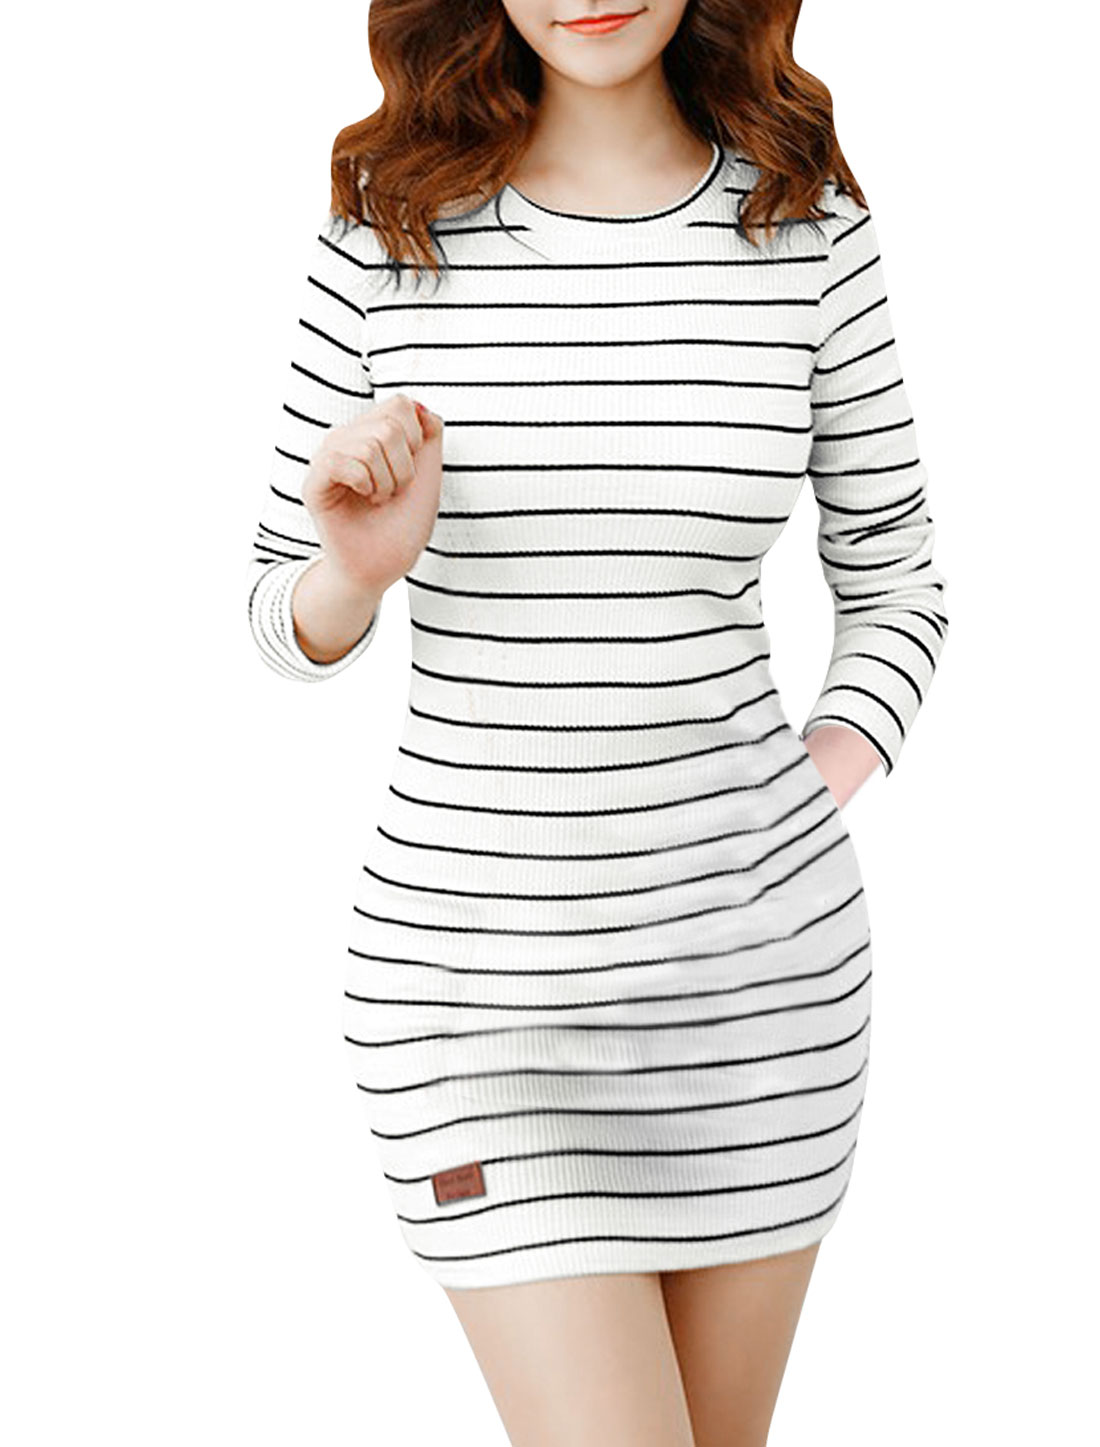 Lady Round Neck Long Sleeve Stripes Elastic Black White Dress XS